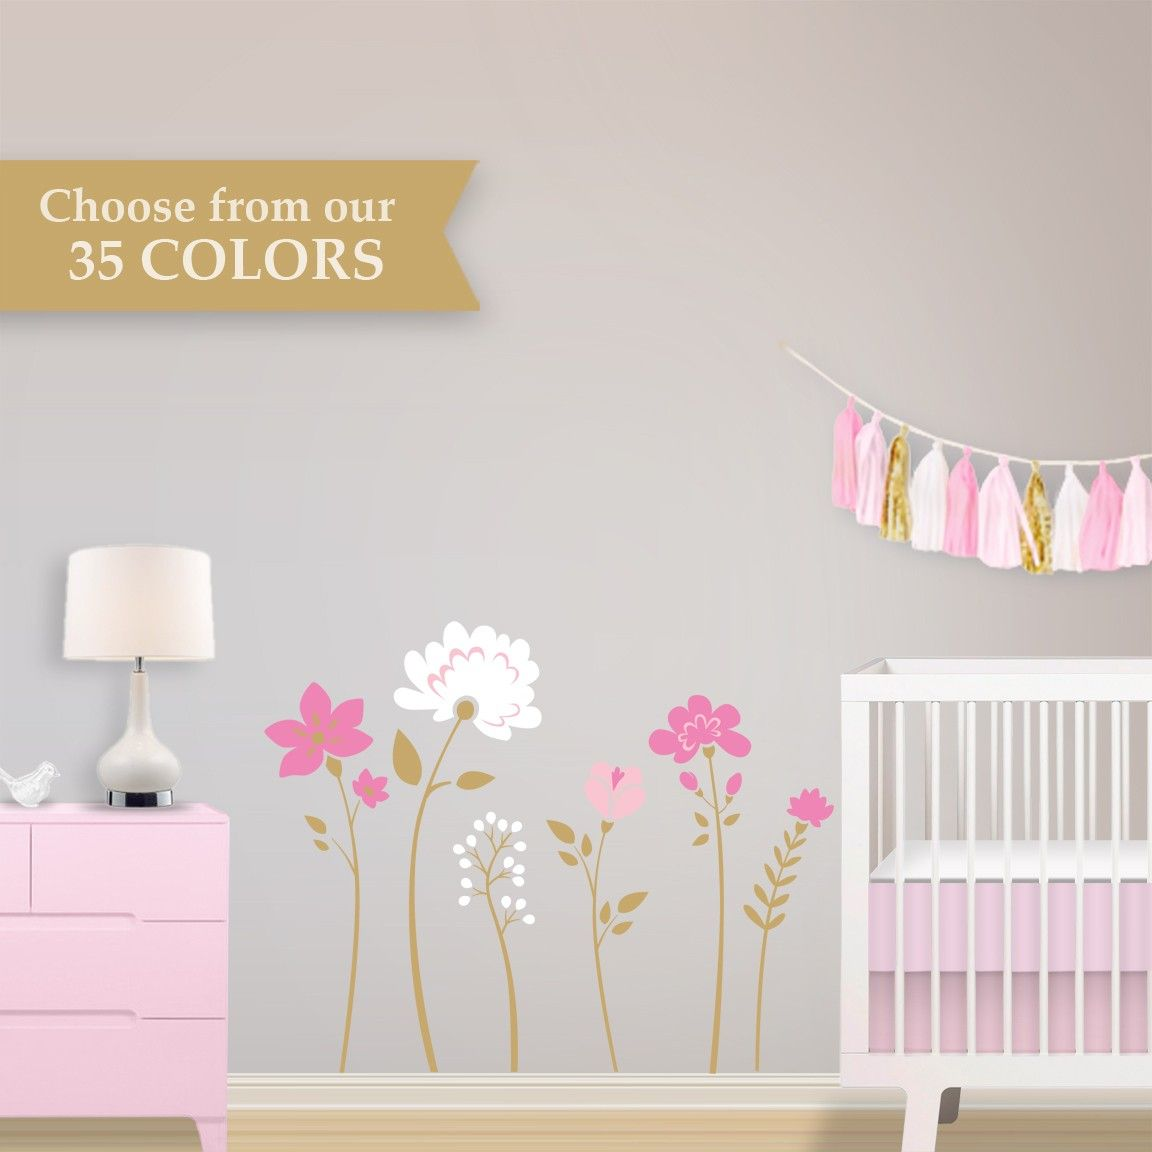 15 glitzy gold ways to make a nursery or kids room shine gold flower wall decals choose your colors floral removable gold nursery wall decals amipublicfo Image collections